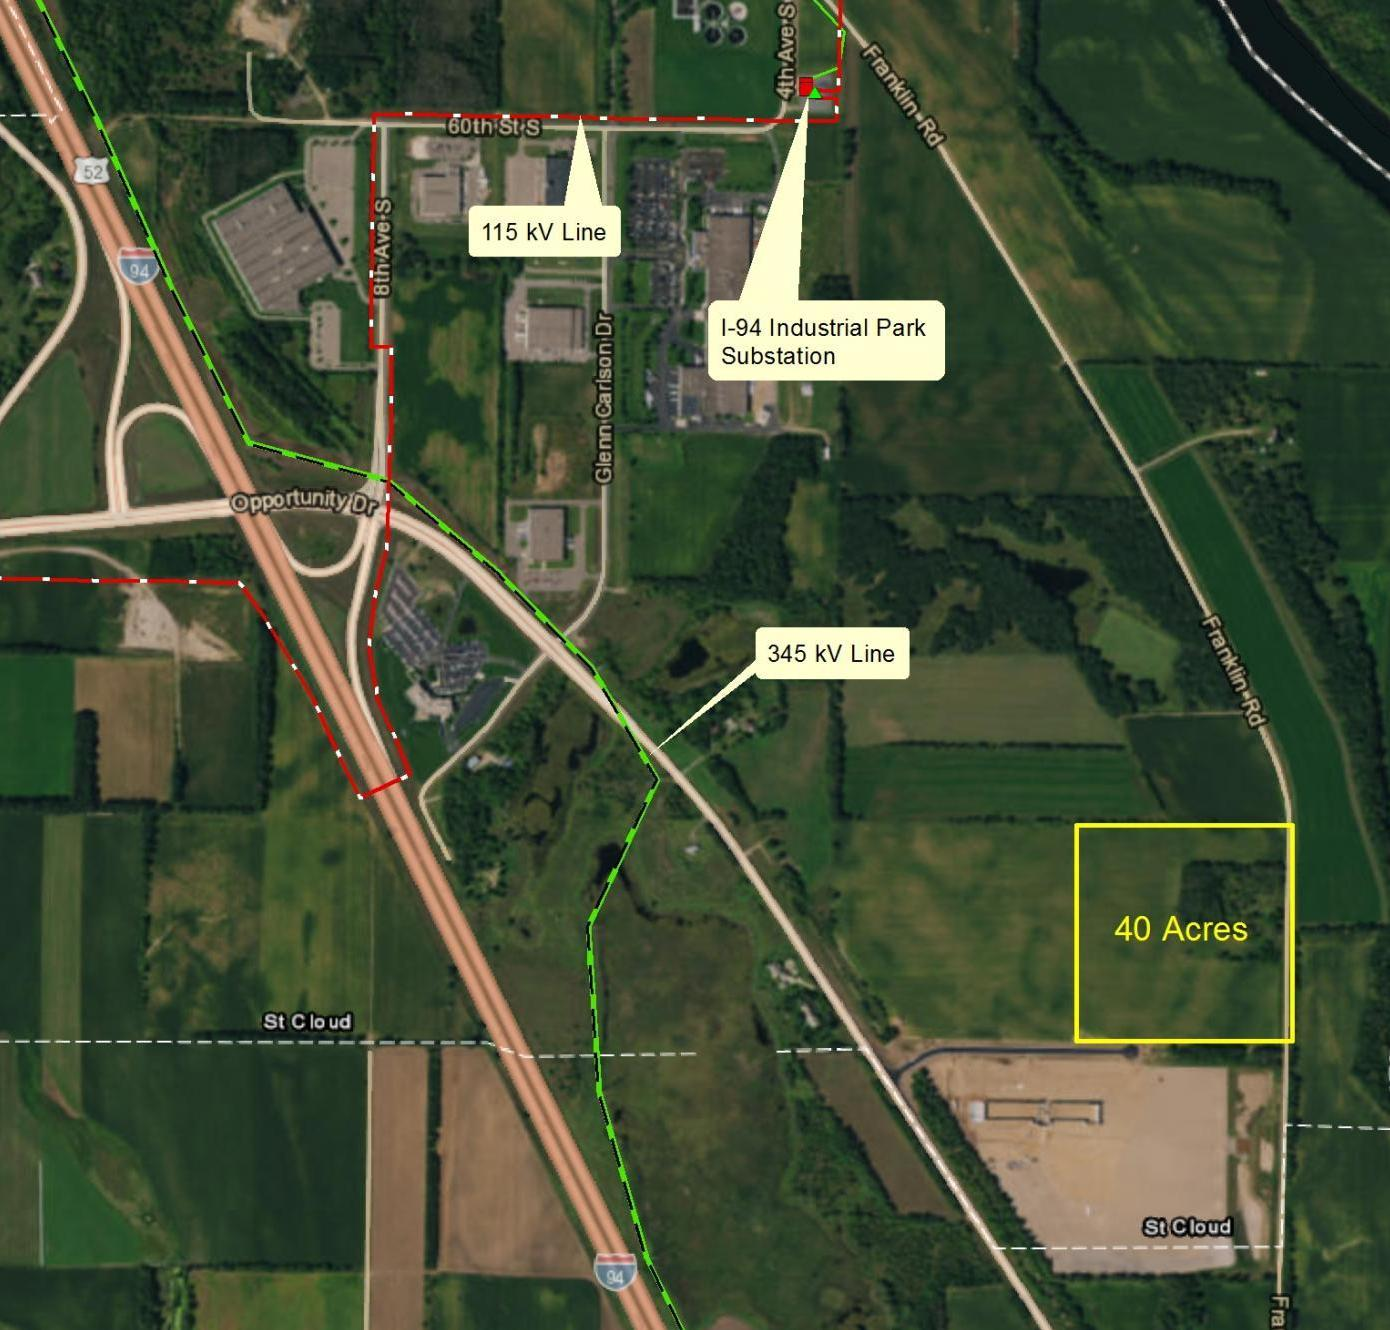 Main Photo For County Road 75/I-94 Business Park Data Center Site (St. Cloud, MN)